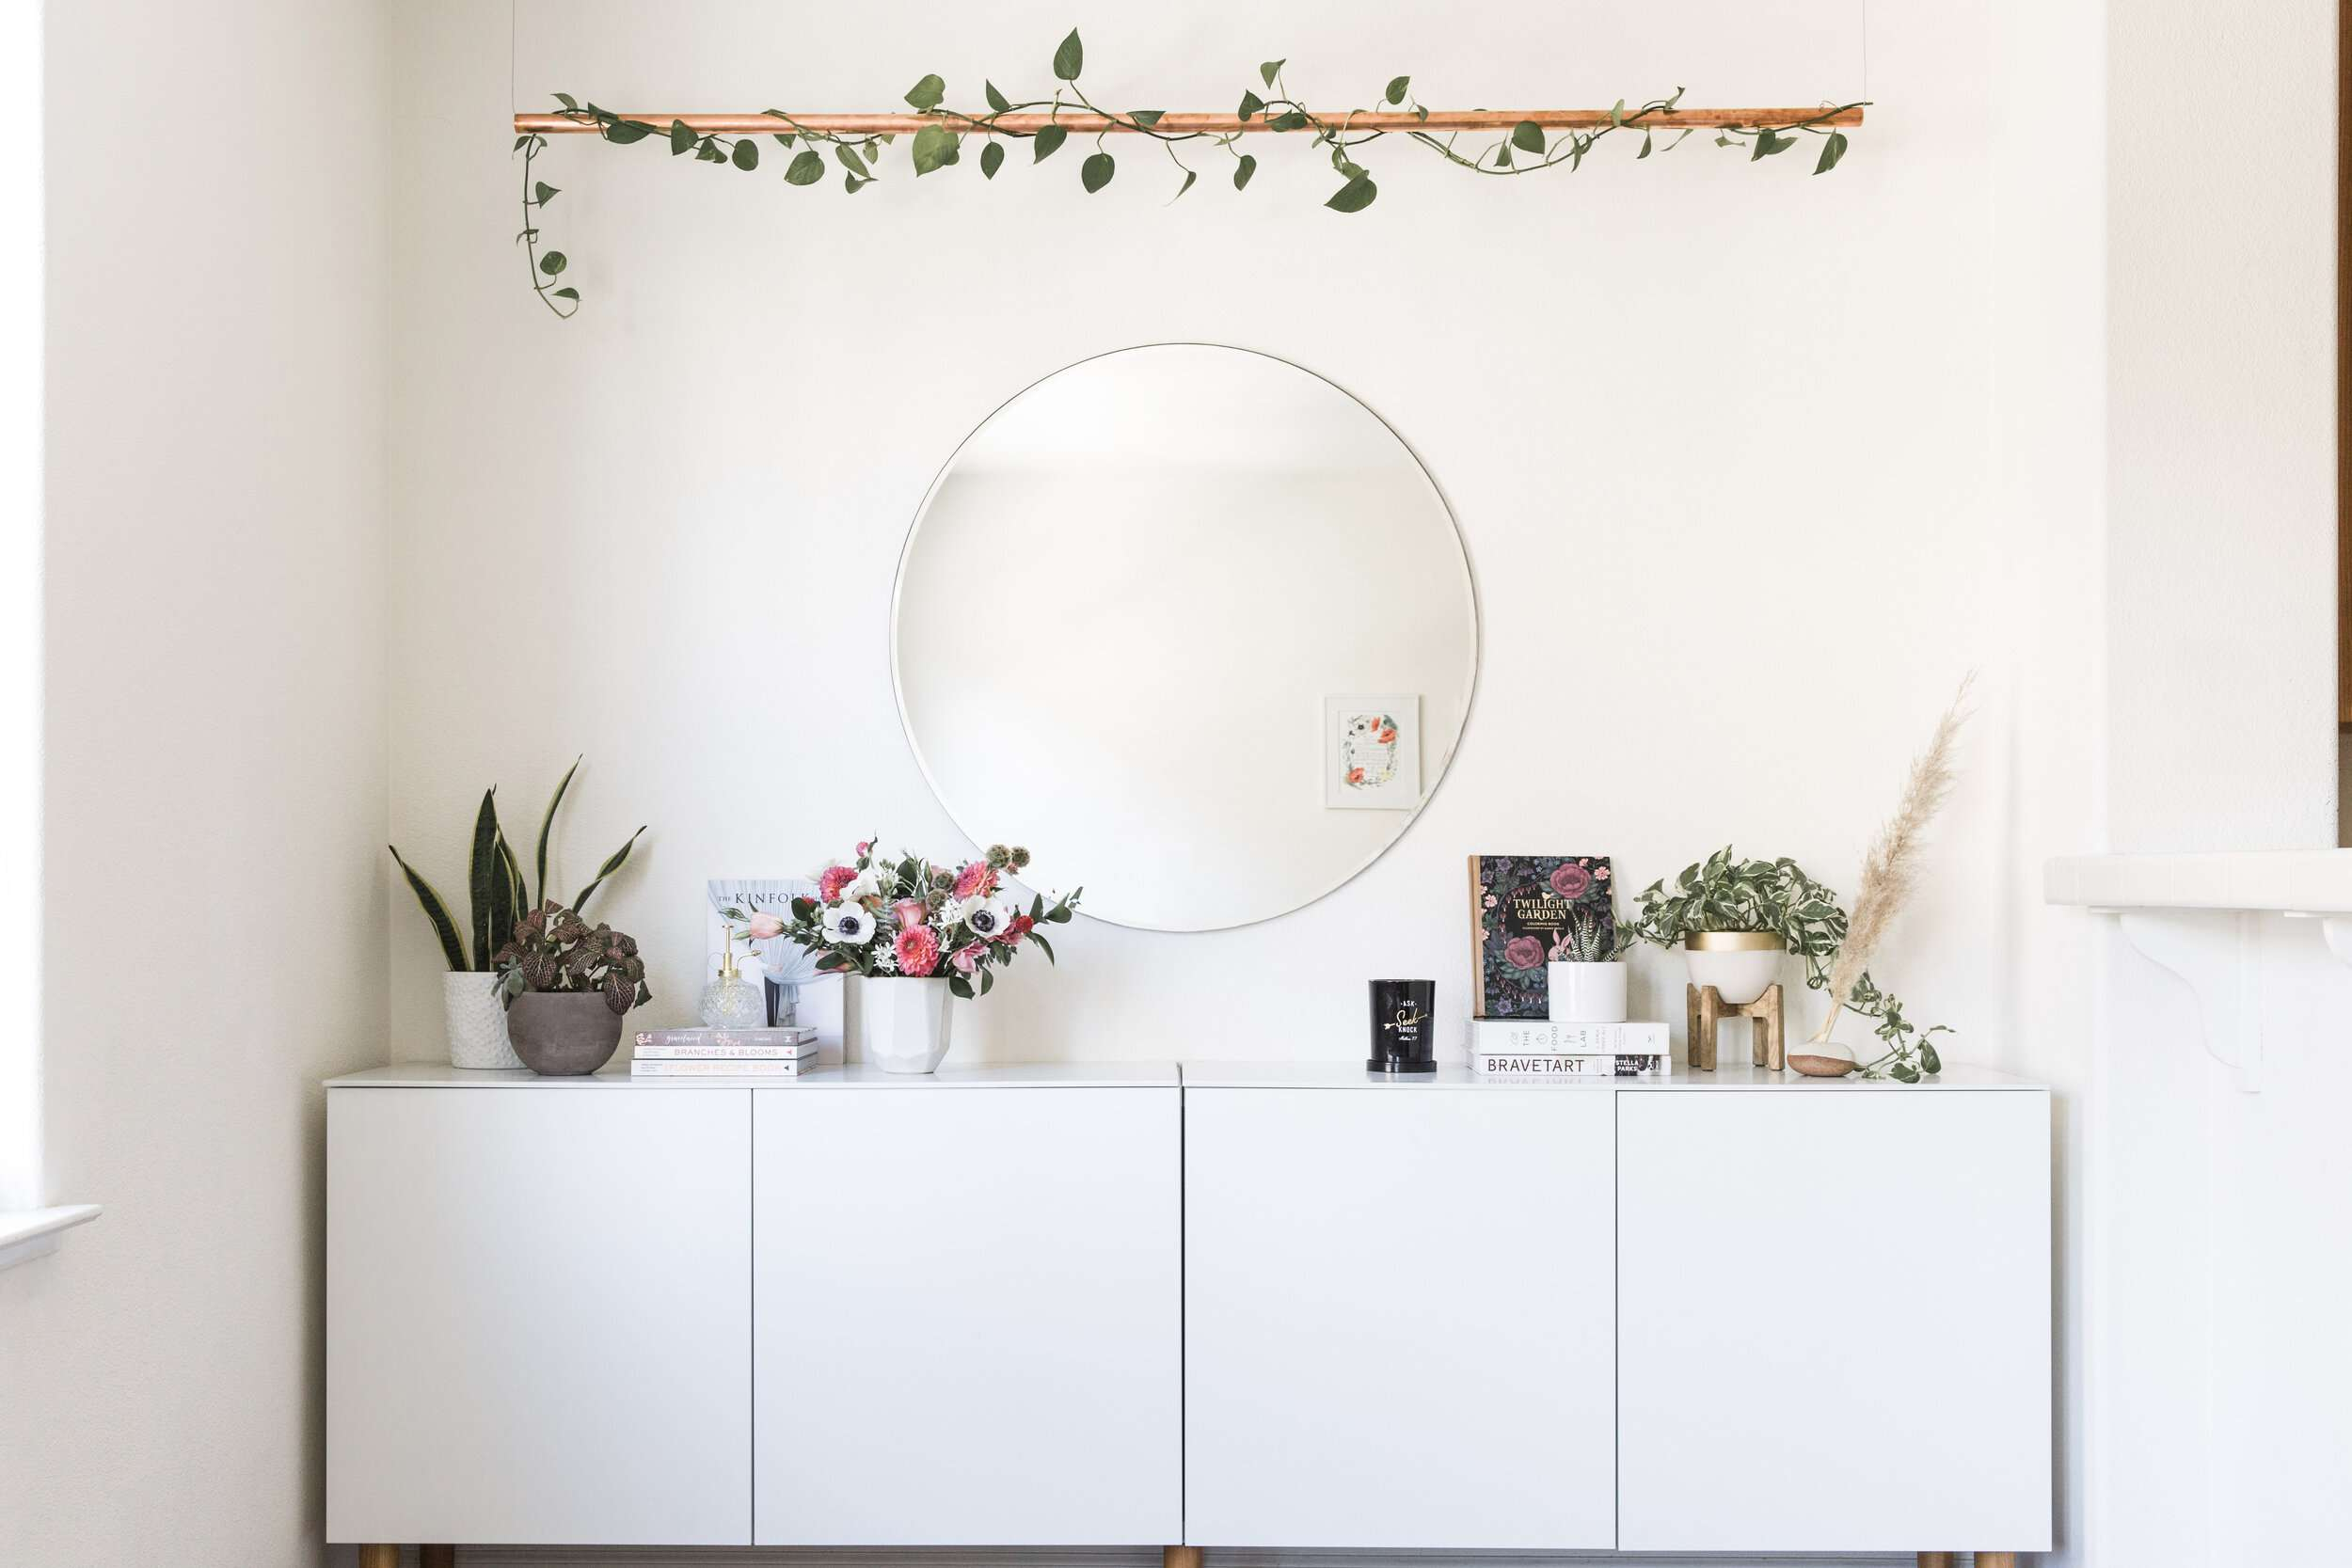 Dresser with plant vines above it